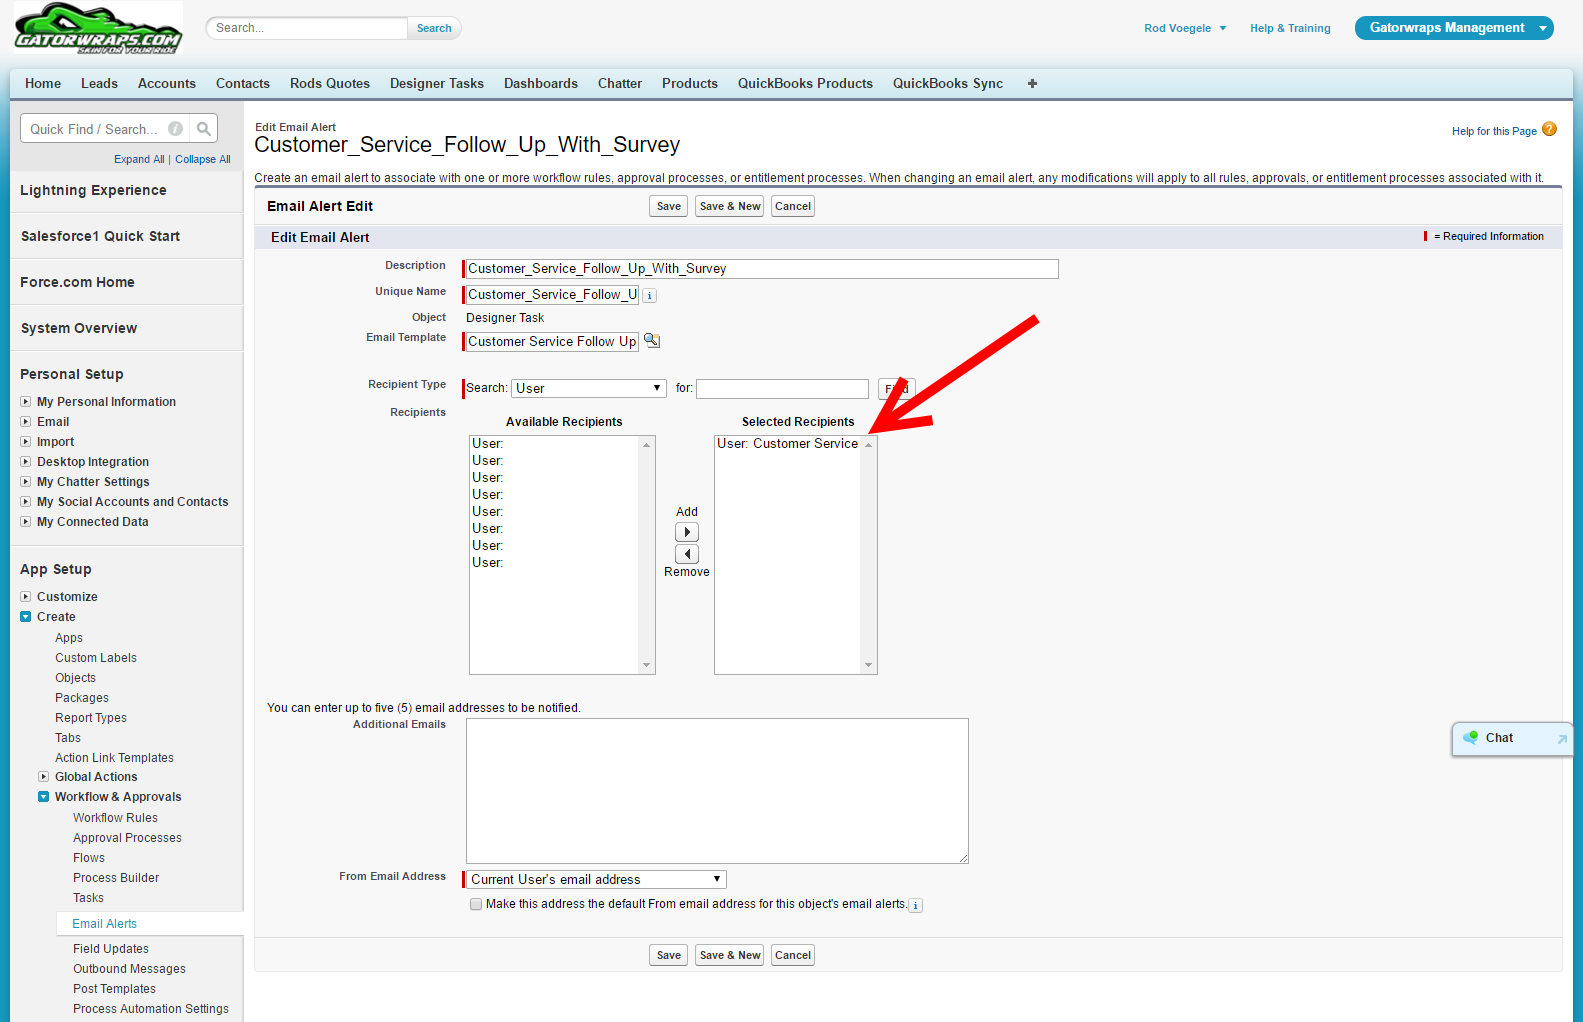 How can we add a customer's email address as a recipient in the Email Alerts  under Workflow Rules? - Salesforce Developer Community